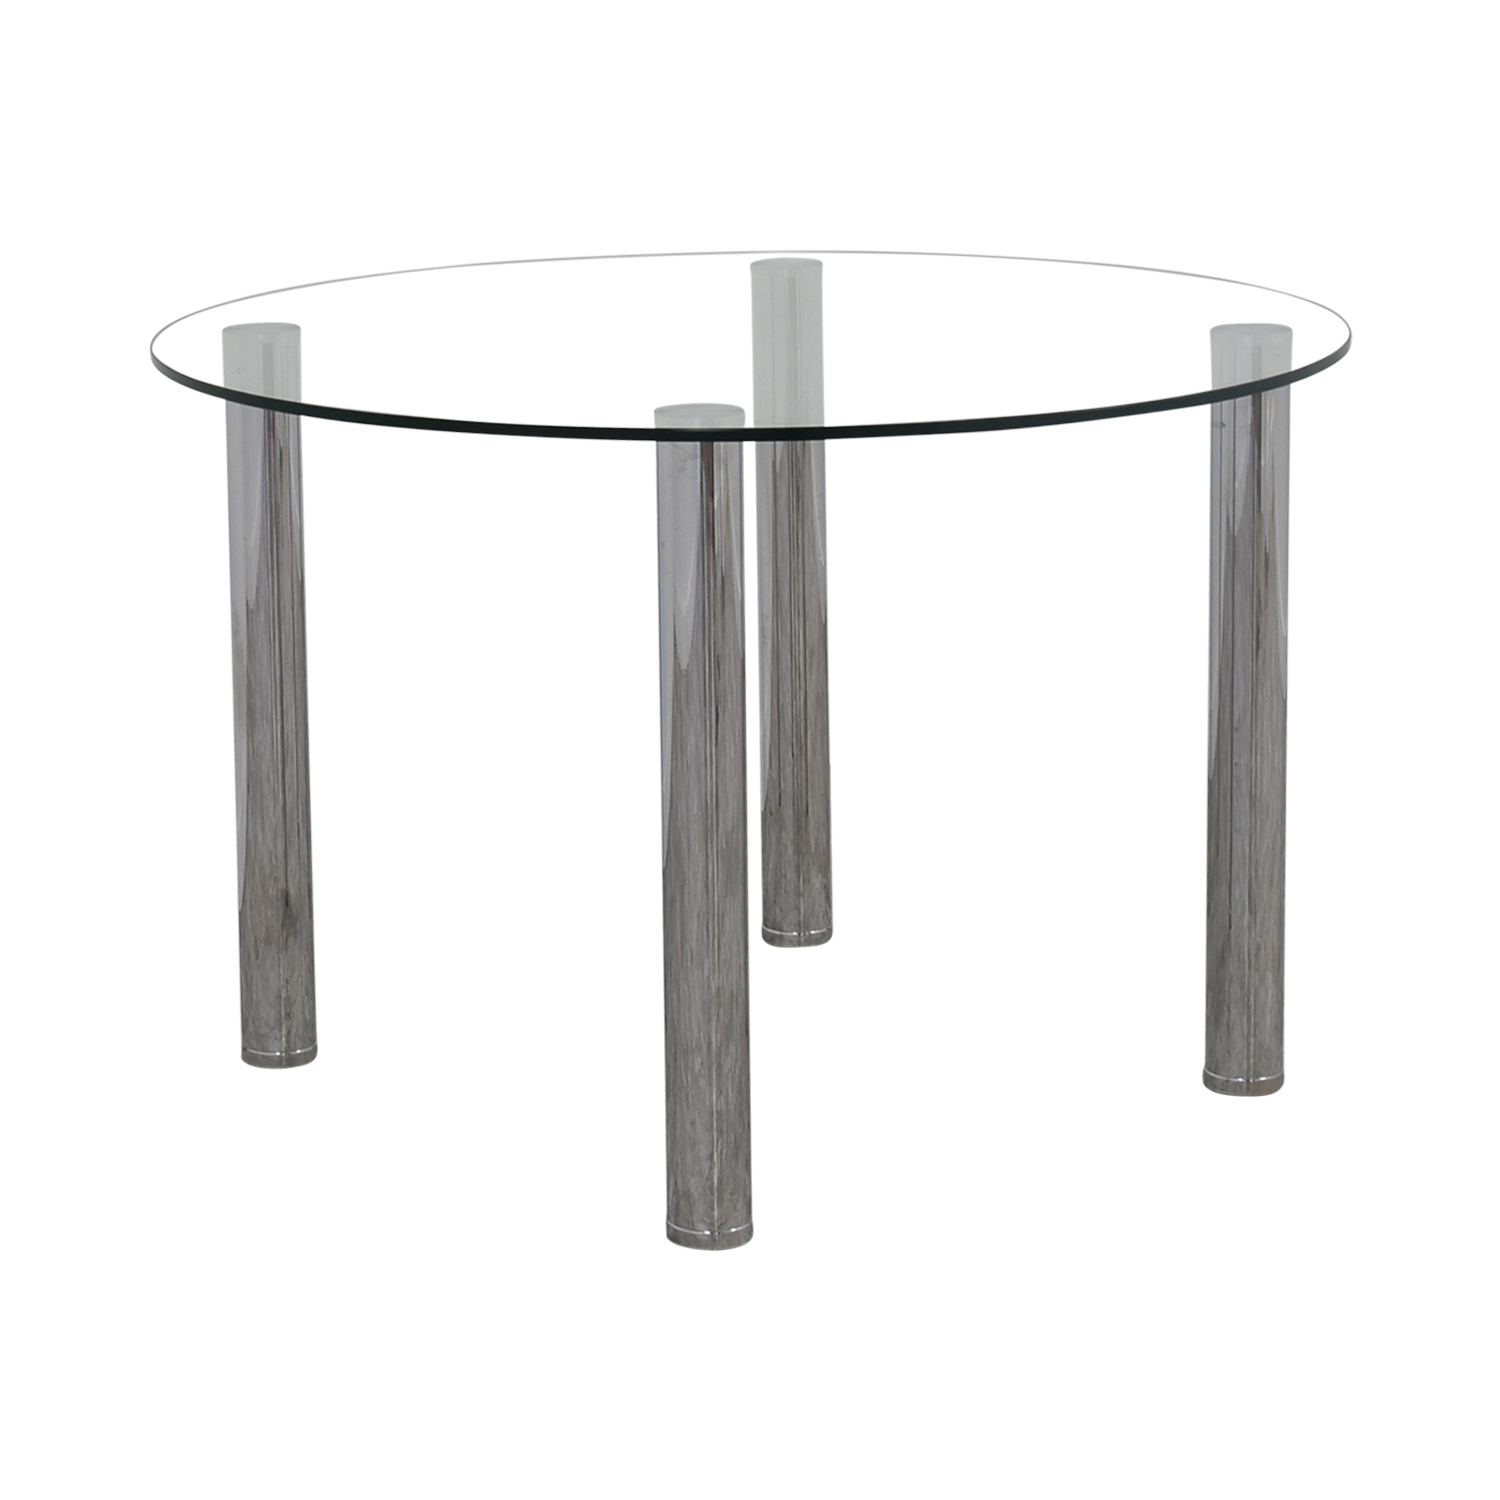 90 off round glass and chrome table tables. Black Bedroom Furniture Sets. Home Design Ideas